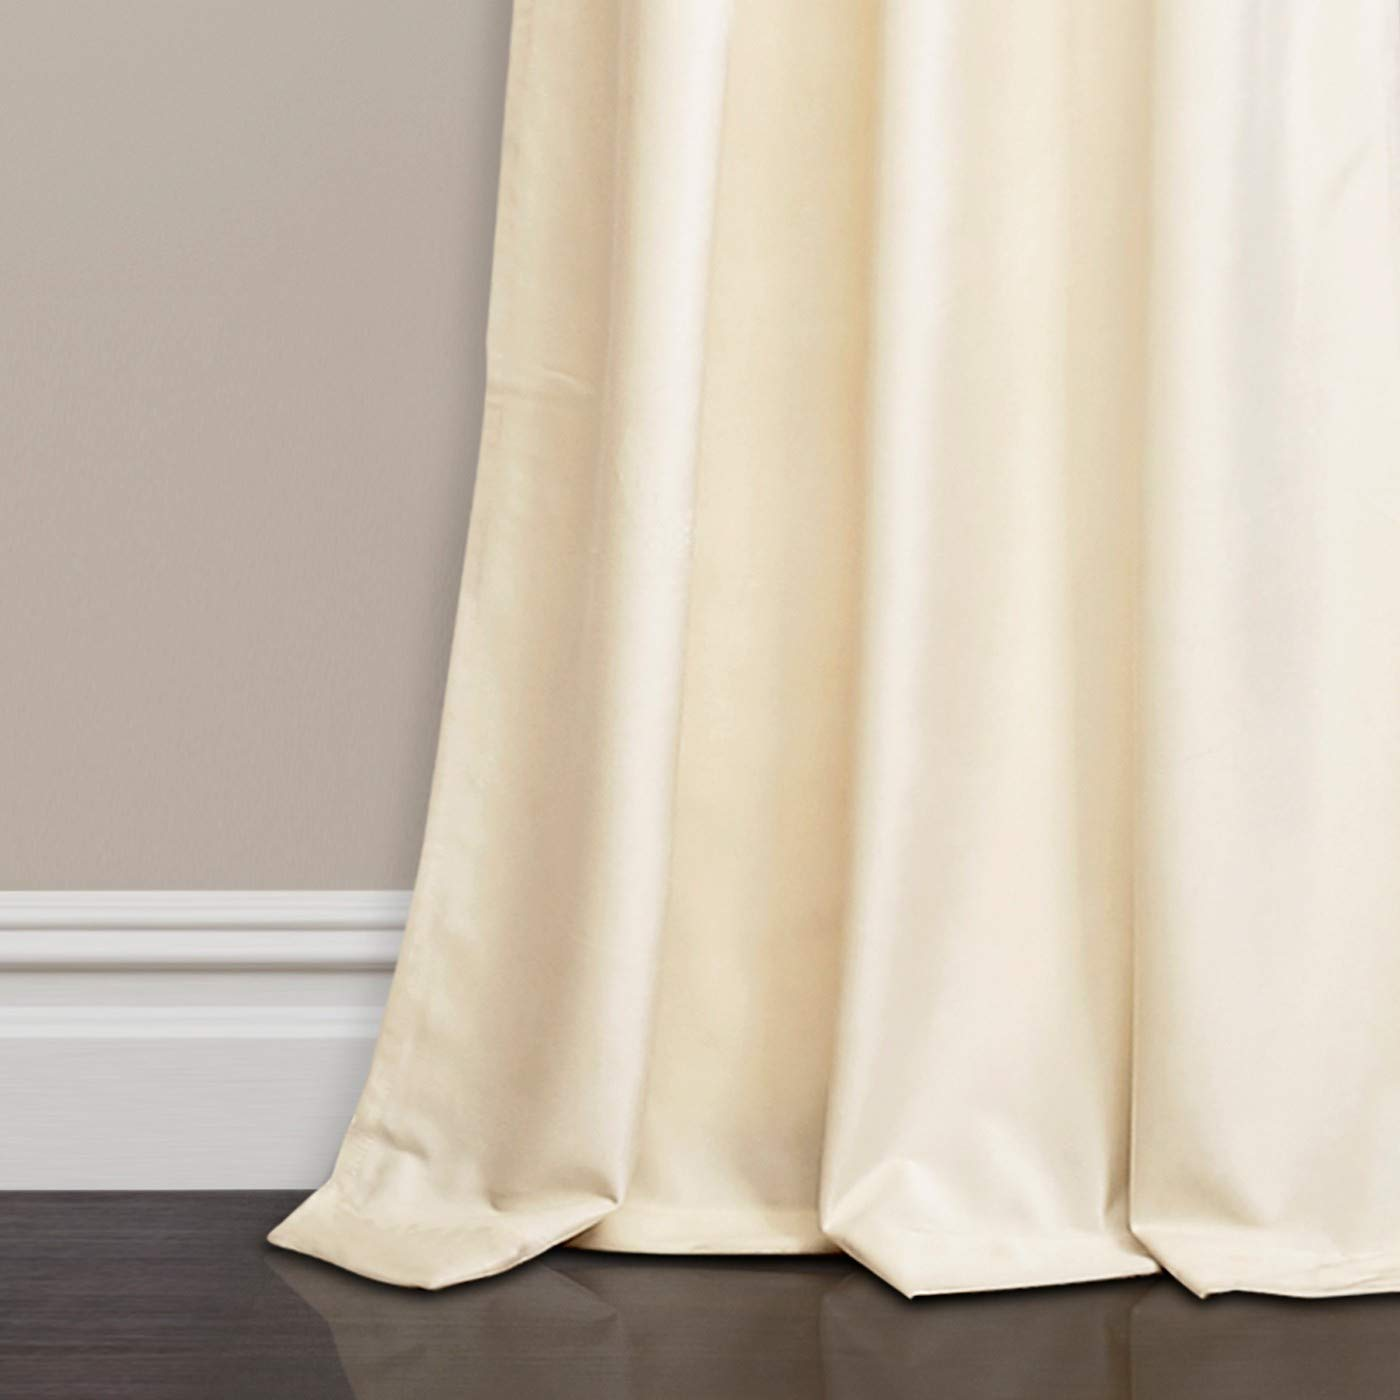 ARlinen Cotton Curtain Panel Set of (2) Solid Ivory for Indoor Outdoor Darkening Drapes for Home Panel Curtain, Bedroom, Living Room, Kitchen, Nursery (W60 XL84), Ivory/Cream